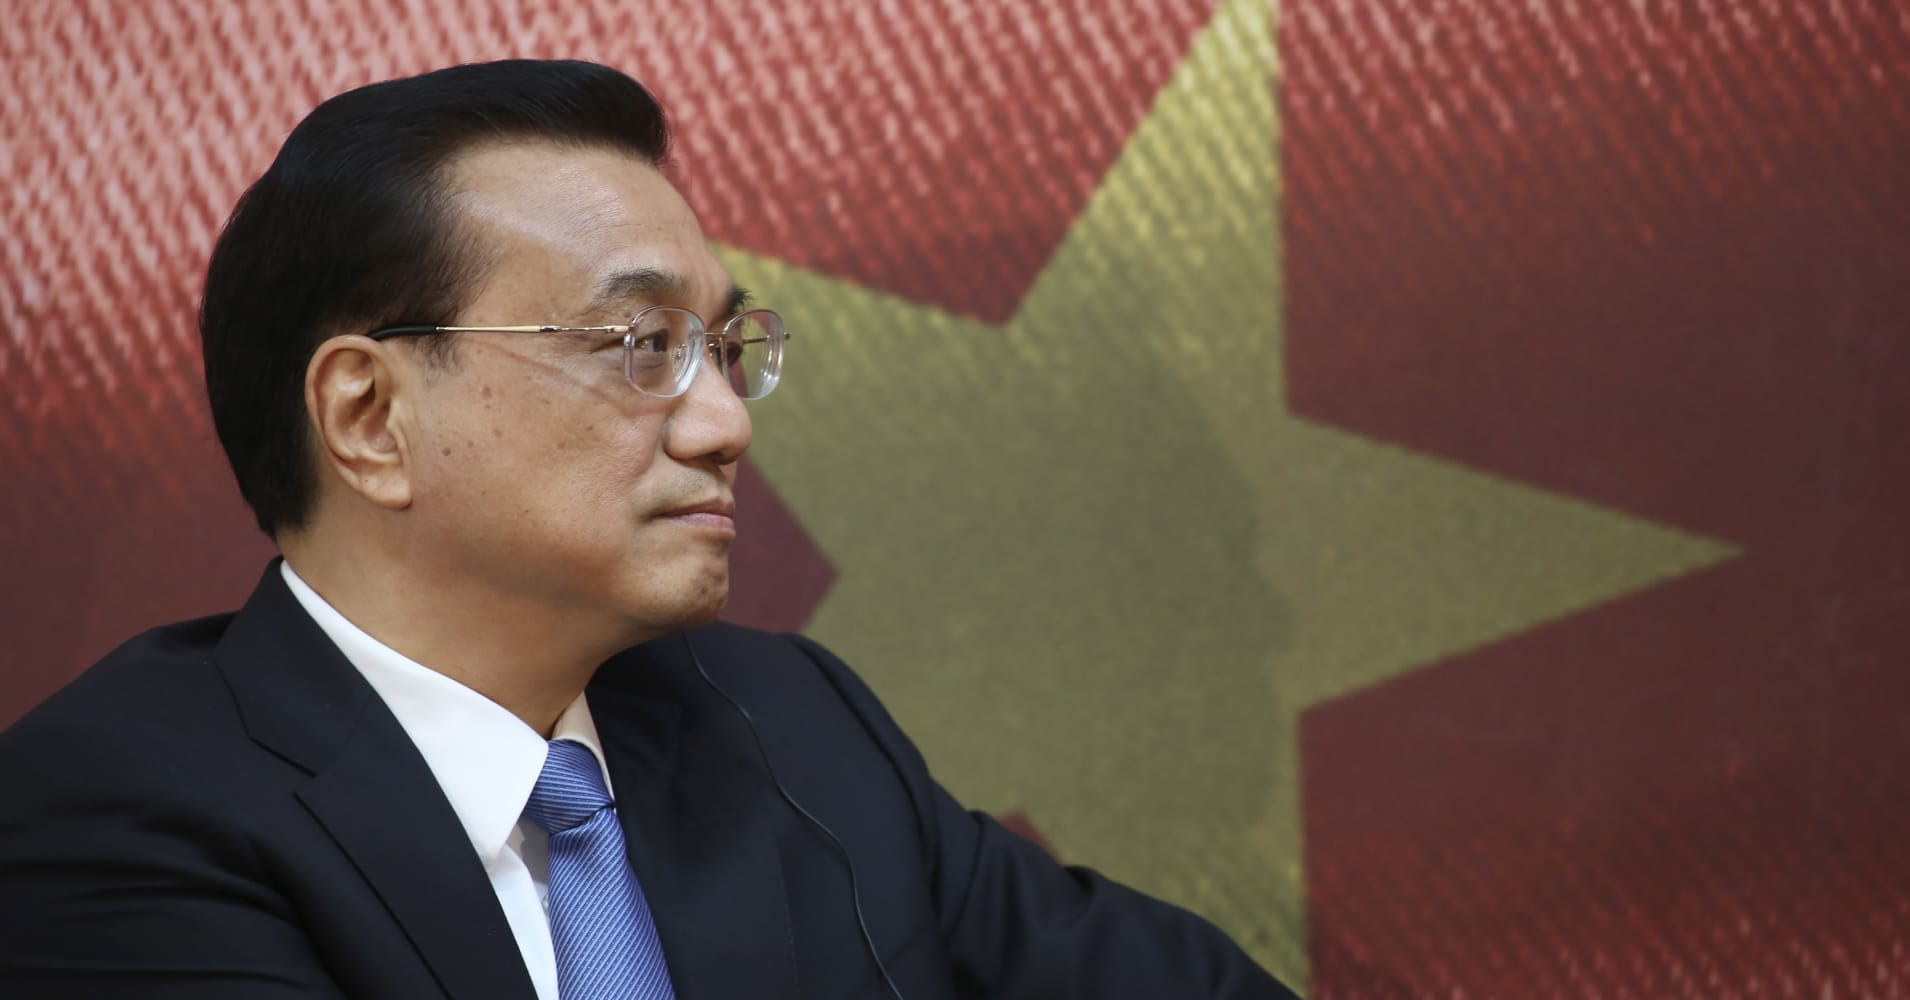 Chinese premier: Our economy faces 'new, downward pressure'